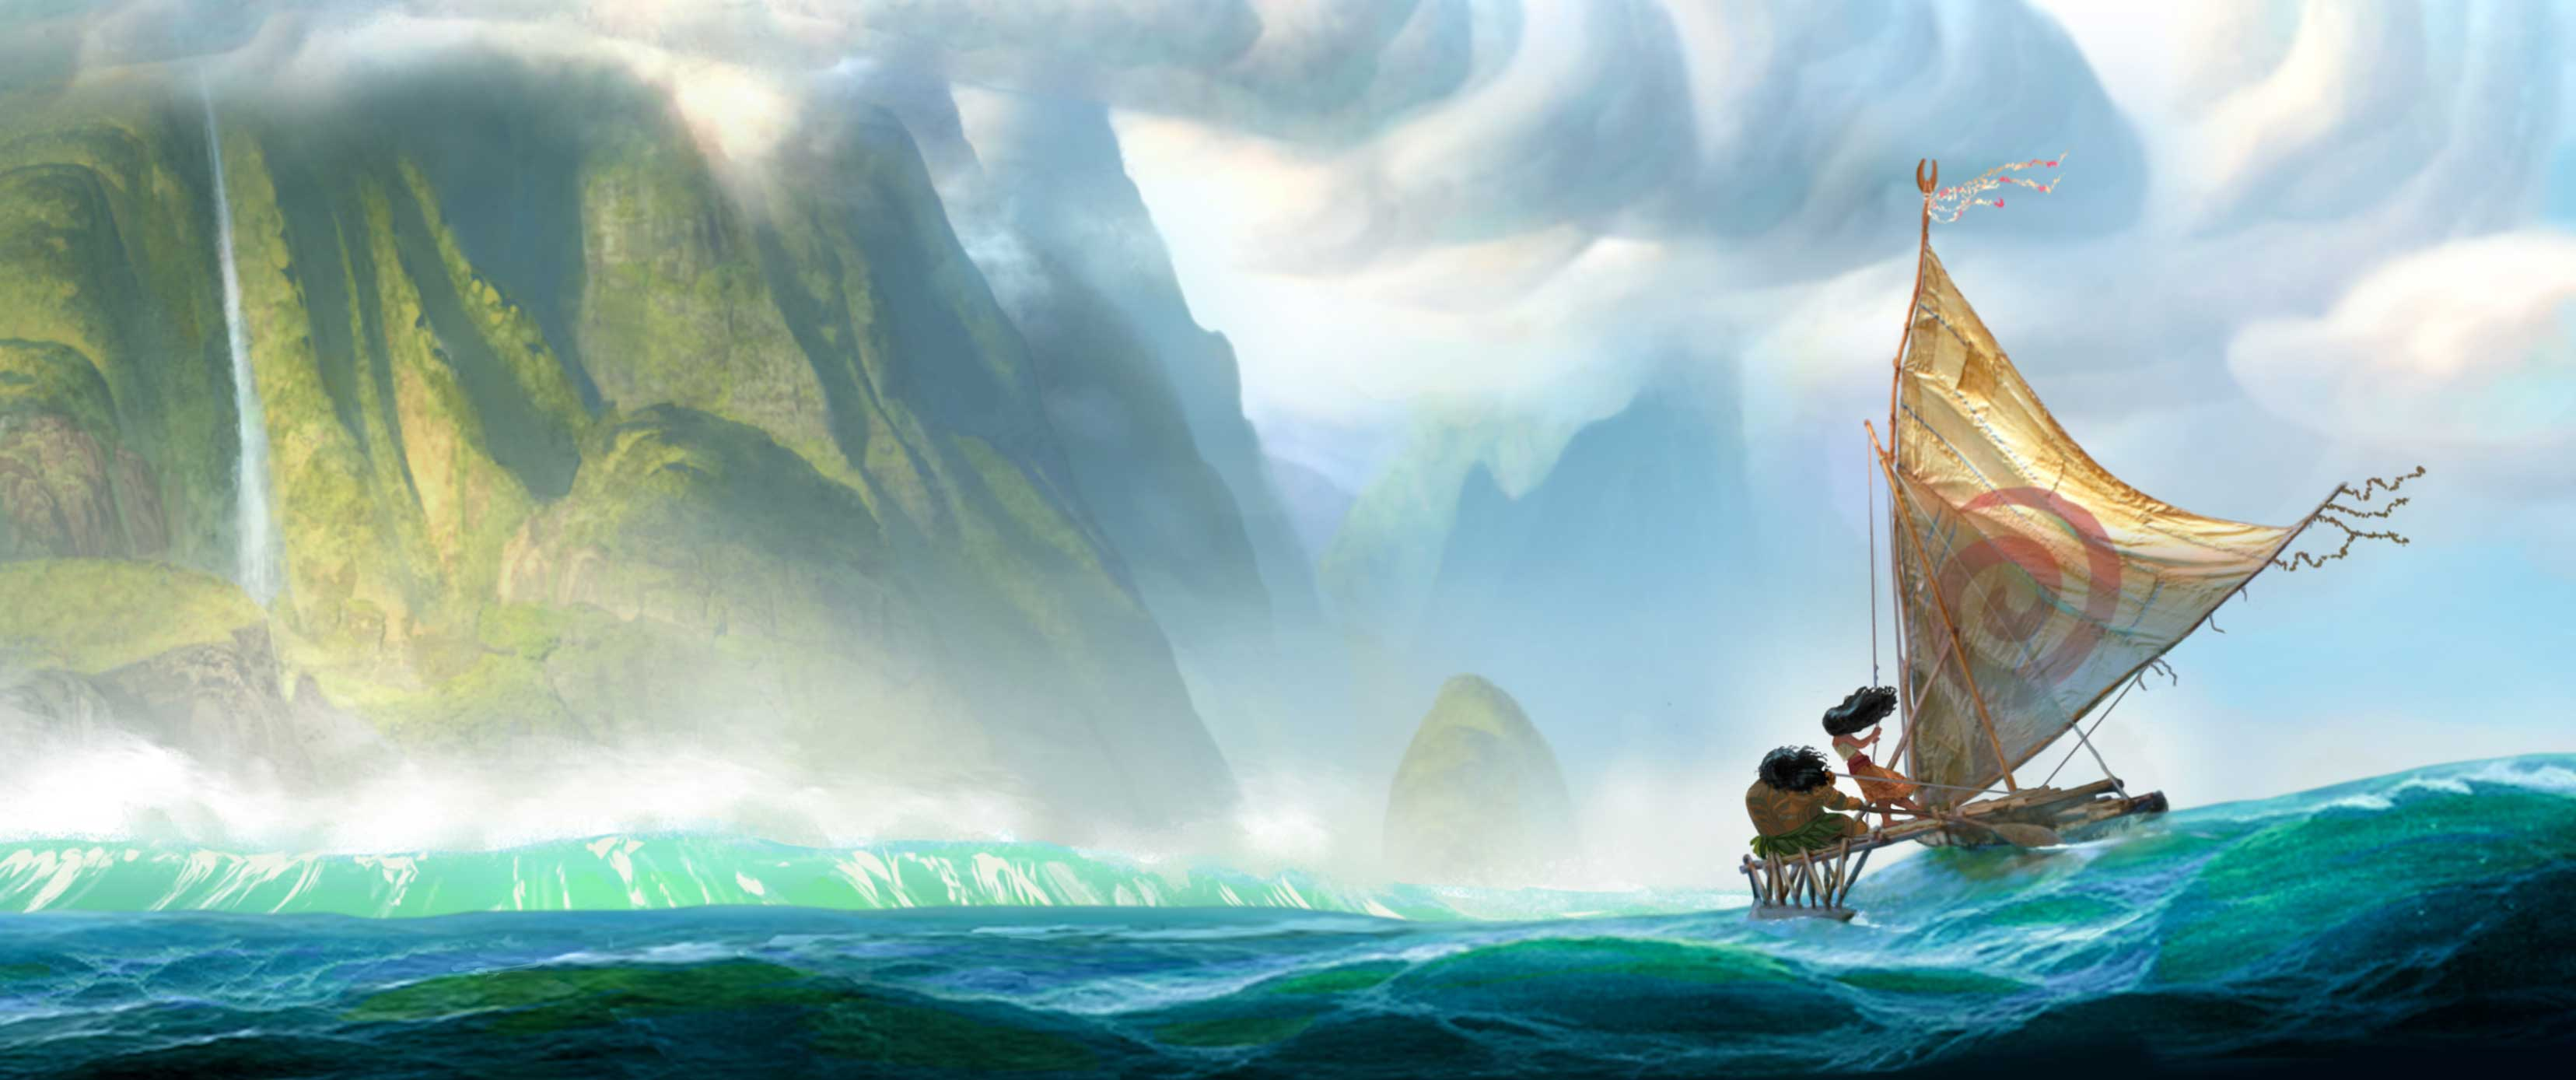 "A first look at the Walt Disney Animation Studios upcoming film ""Moana"" concept art – opening late 2016  (Disney Release)"